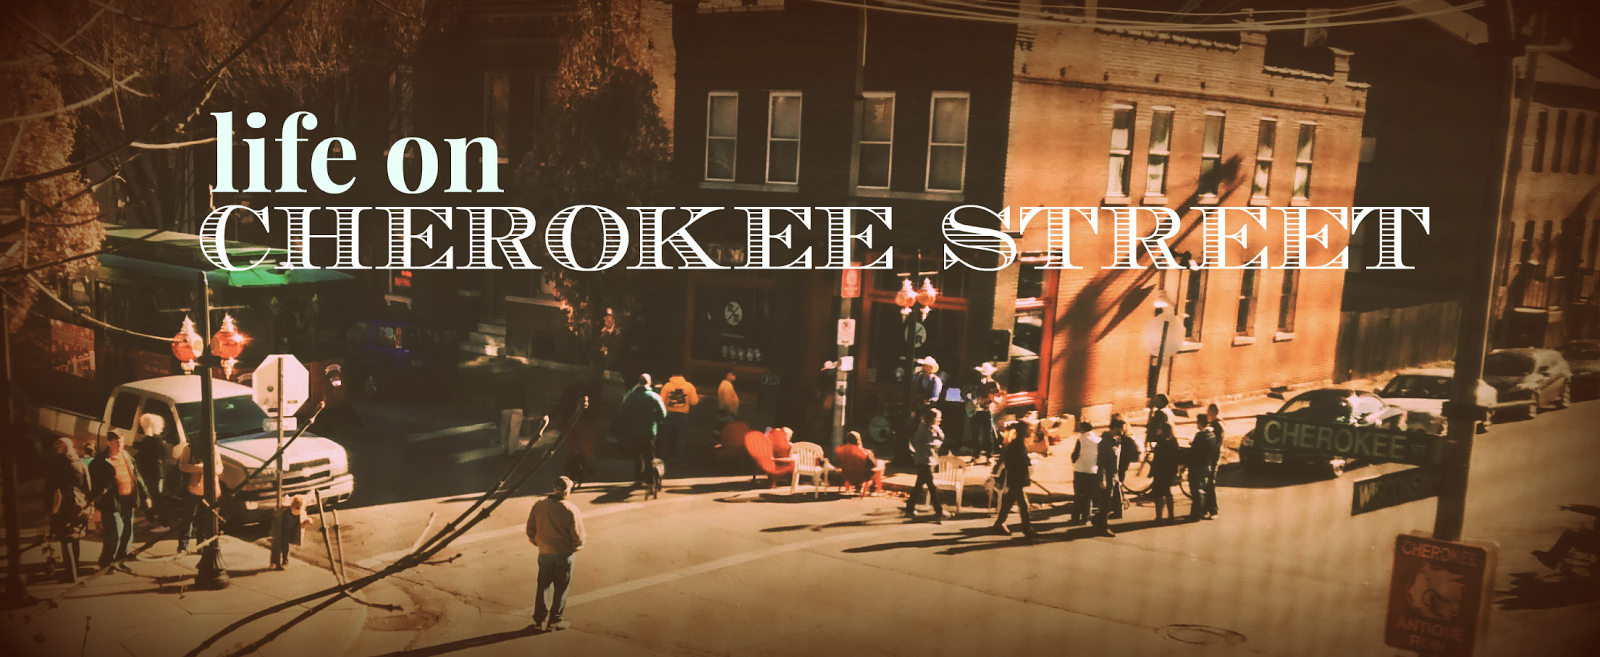 Life on Cherokee Stree